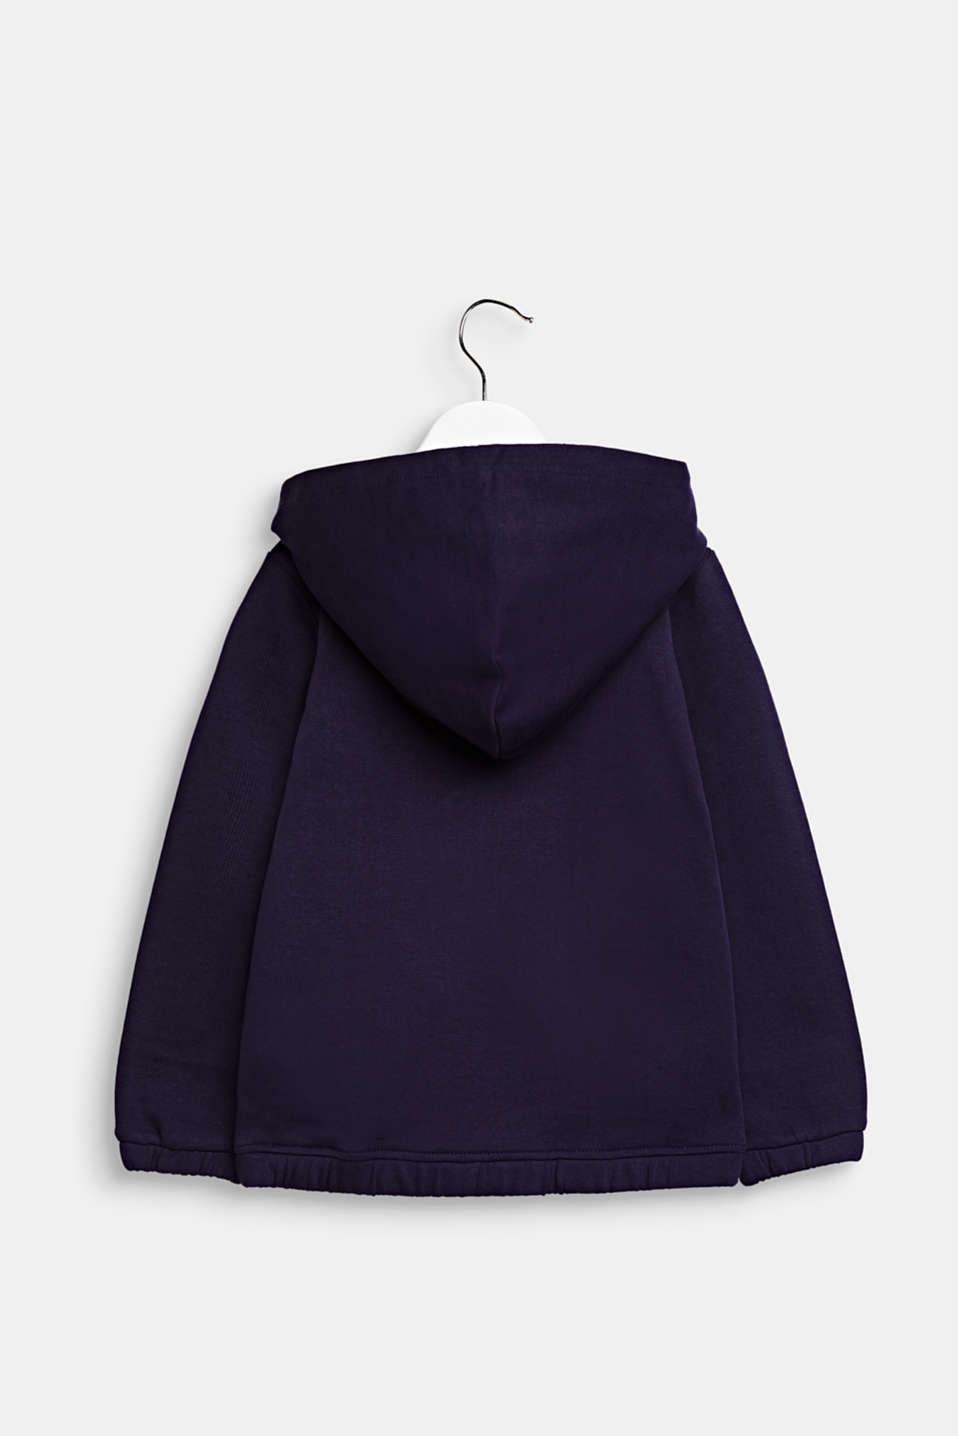 Sweatshirt cardigan in 100% cotton, NIGHT BLUE, detail image number 1